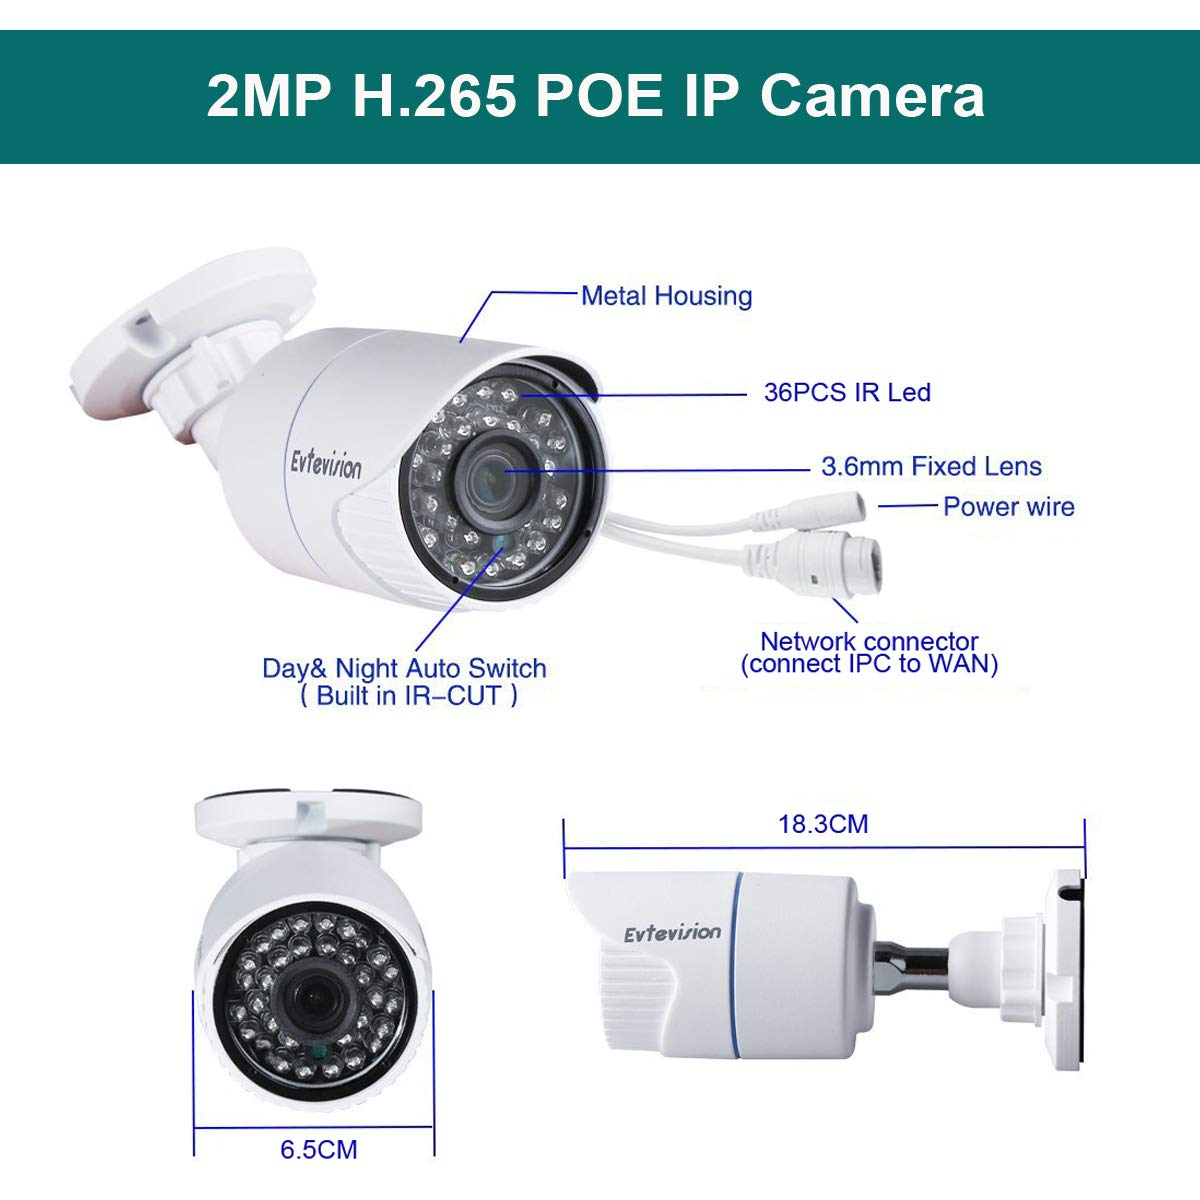 IP Camera,Home Surveillance Bullet Indoor Outdoor Network CCTV Cameras,P2P Cloud 36pcs IR Leds 30Meter Night Vision 866183 Motion Detection 1080P 2MP POE Power Over Ethernet Evtevision Security IP Camera